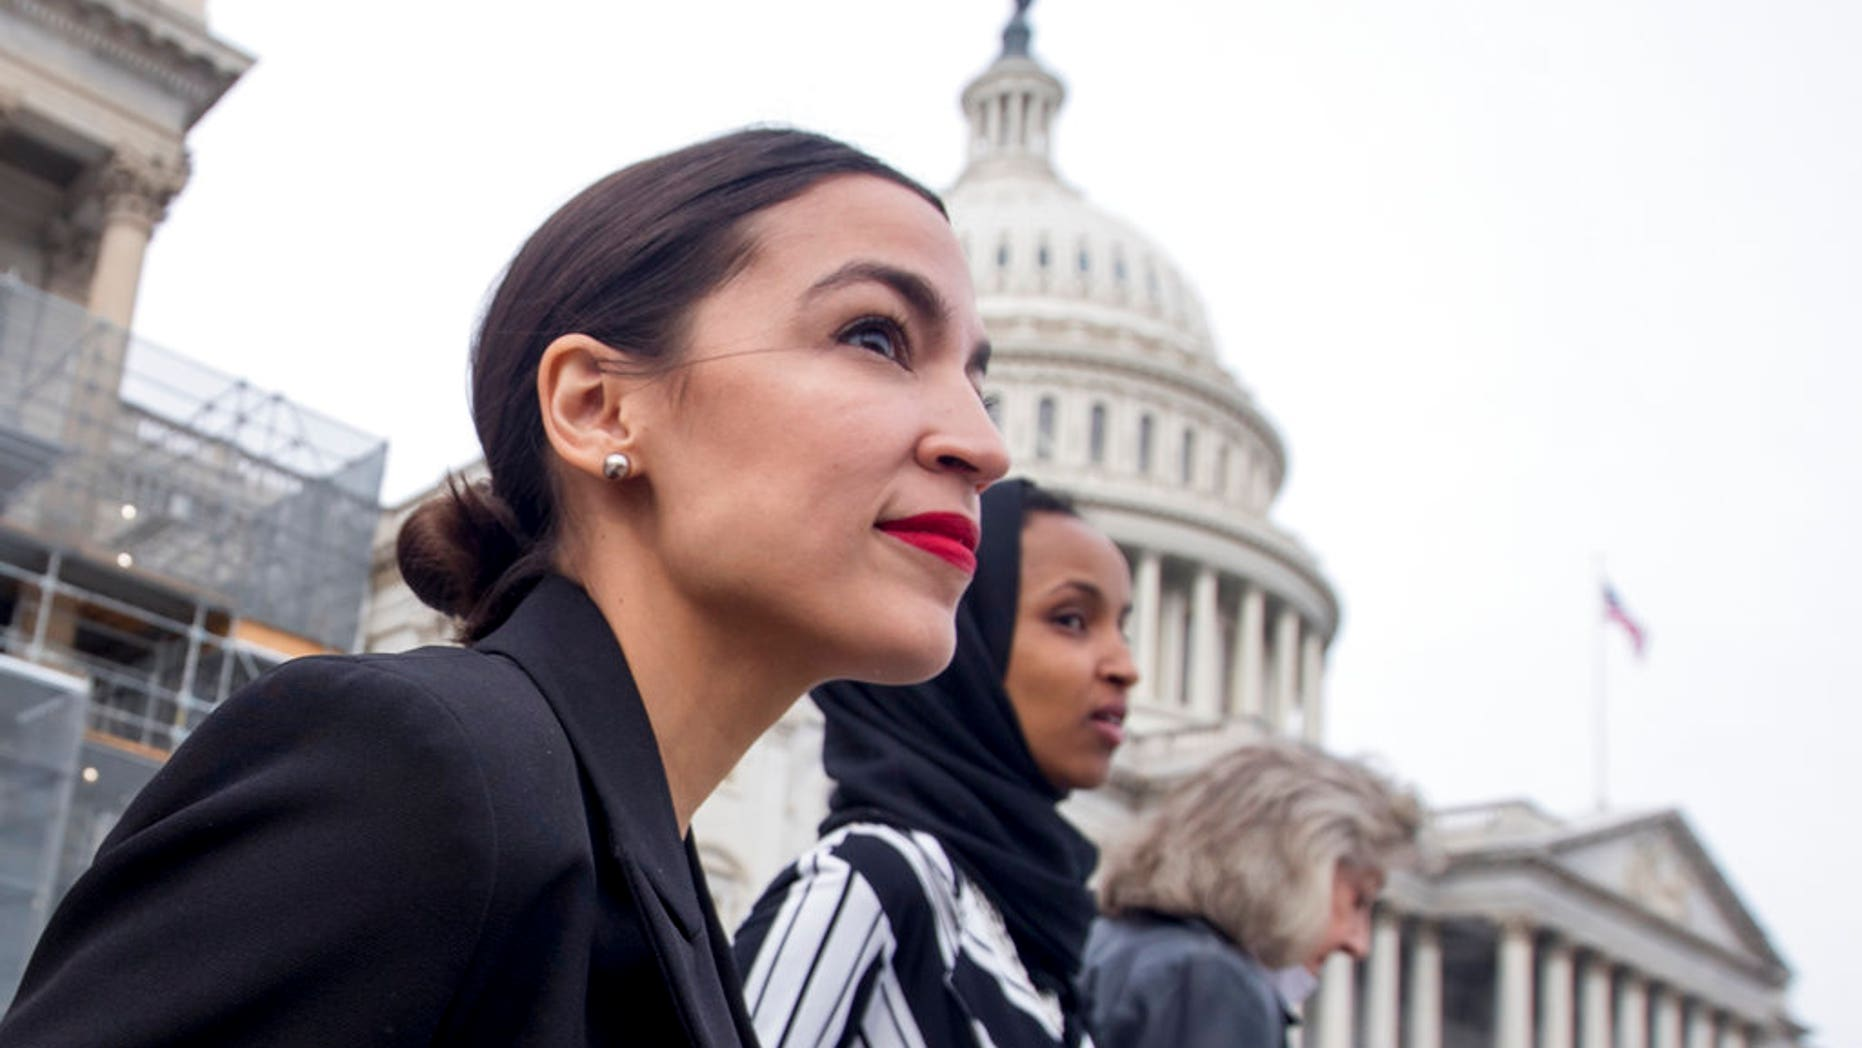 Ocasio-Cortez May Take On Wall Street in New Senate Committee